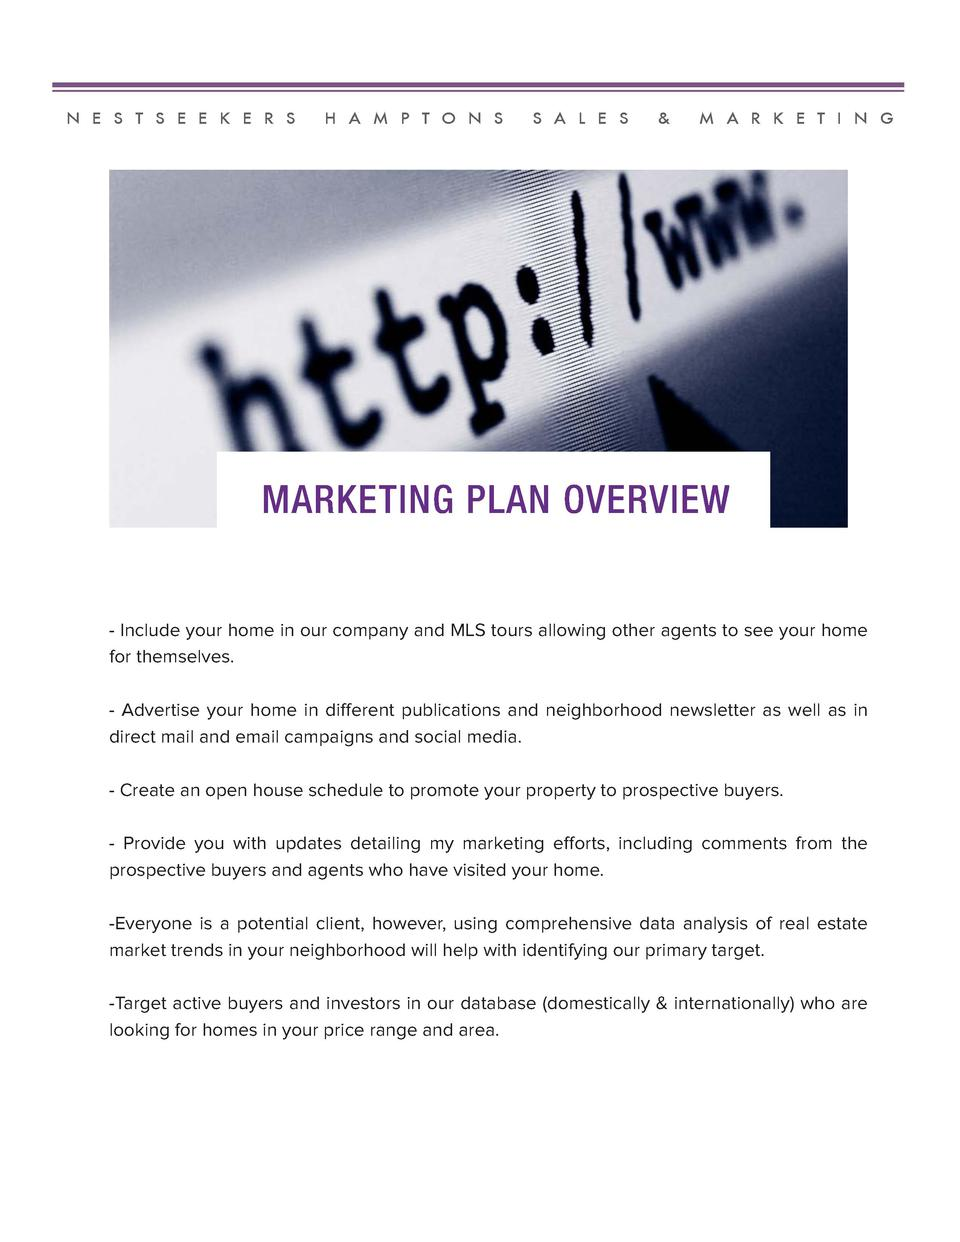 N E S T S E E K E R S  H A M P T O N S  S A L E S     M A R K E T I N G  MARKETING PLAN OVERVIEW  - Include your home in o...